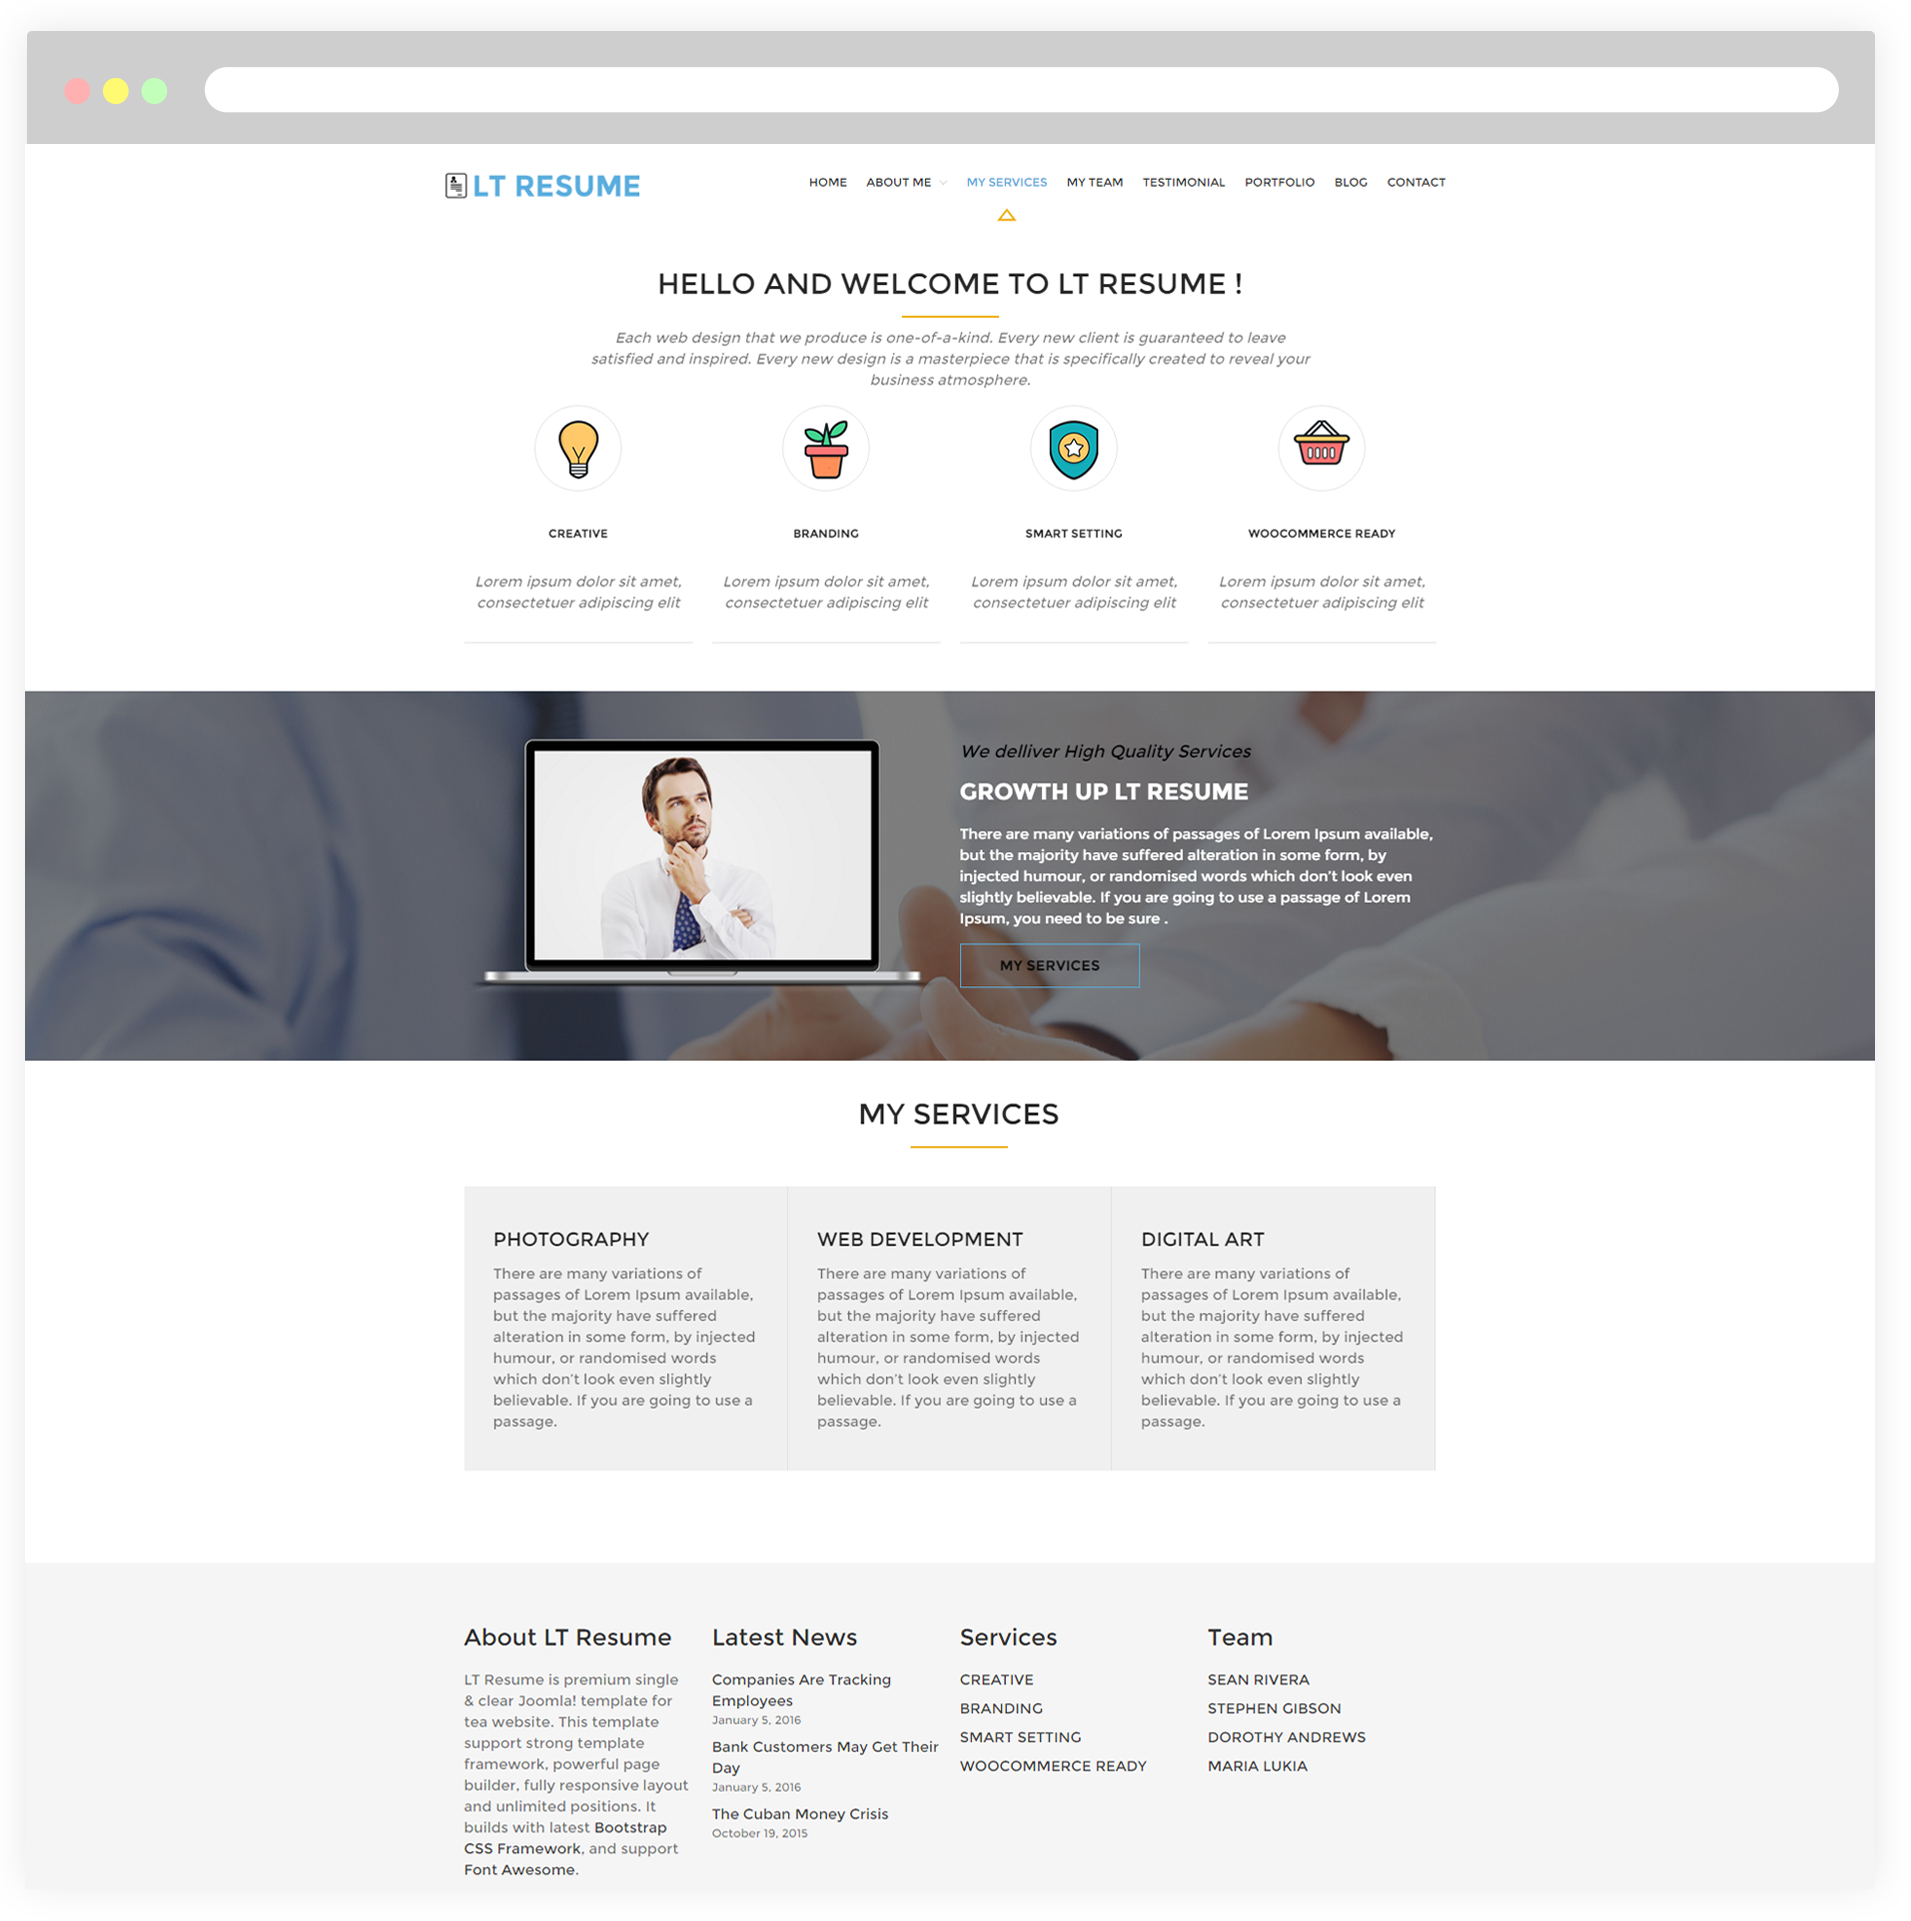 lt resume responsive personal cv resume wordpress theme for services you can list your business related services in details such as photography web development digital by using their unique page template